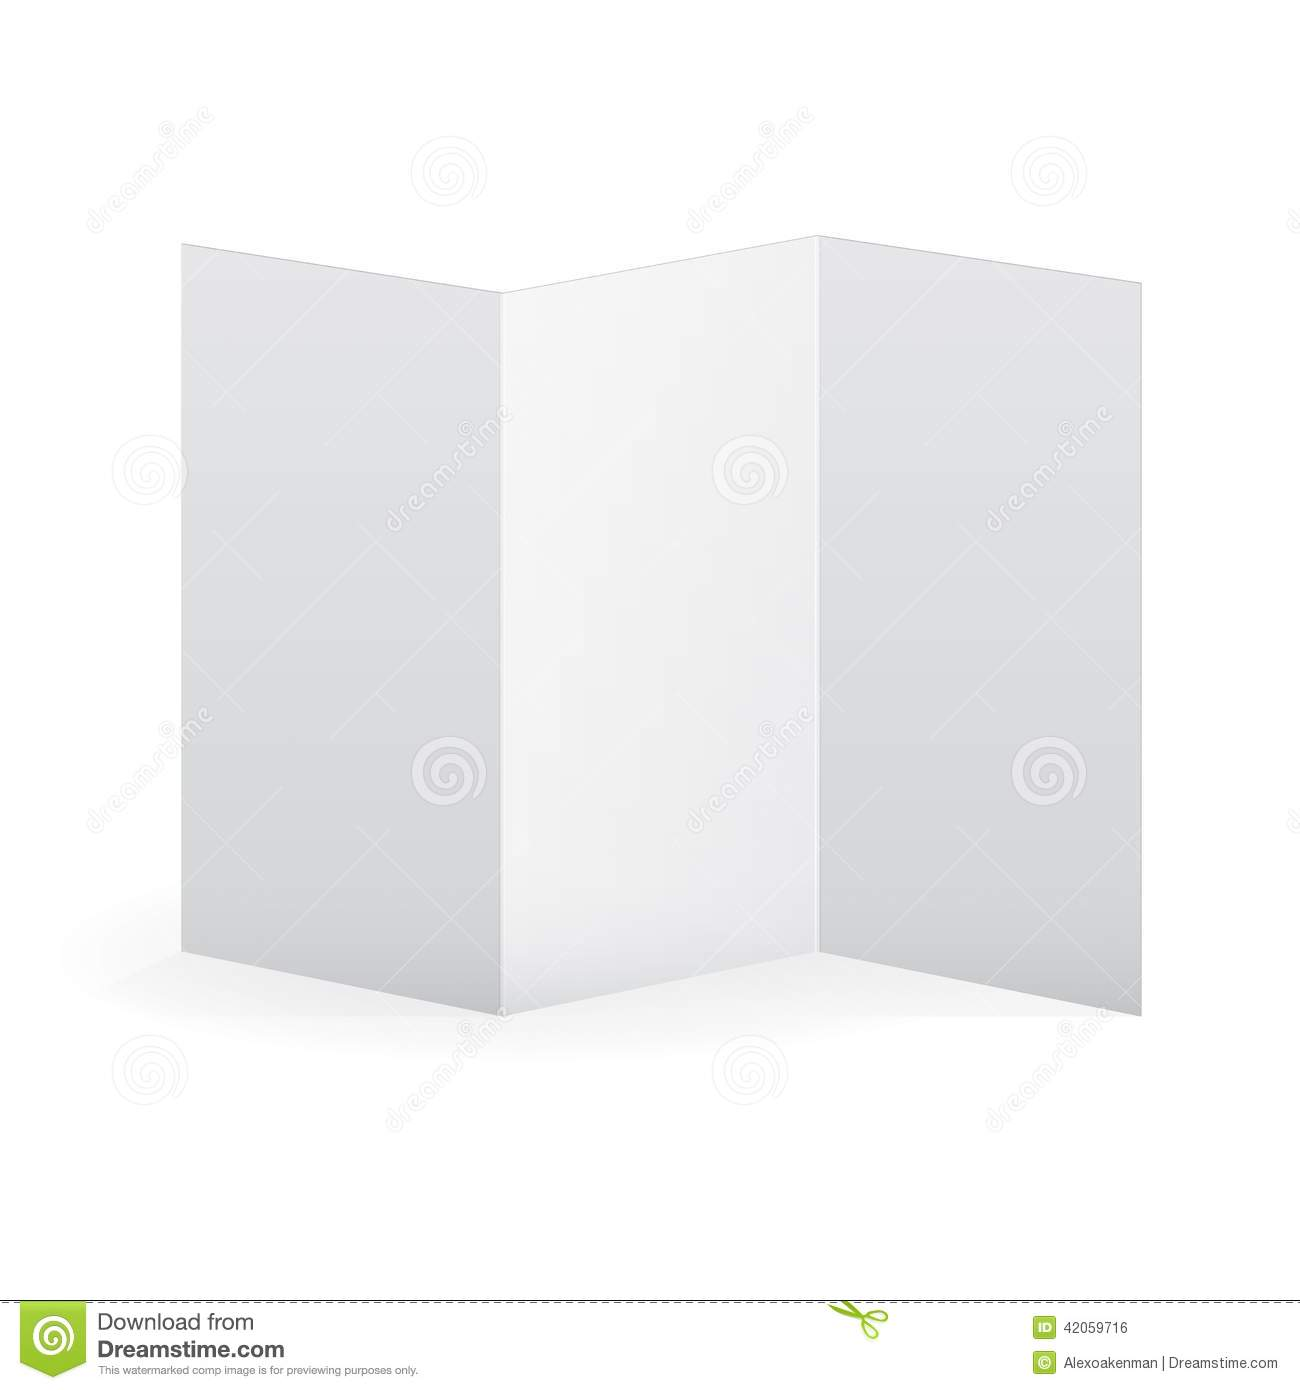 Blank vector white tri fold brochure template stock for Blank tri fold brochure template free download